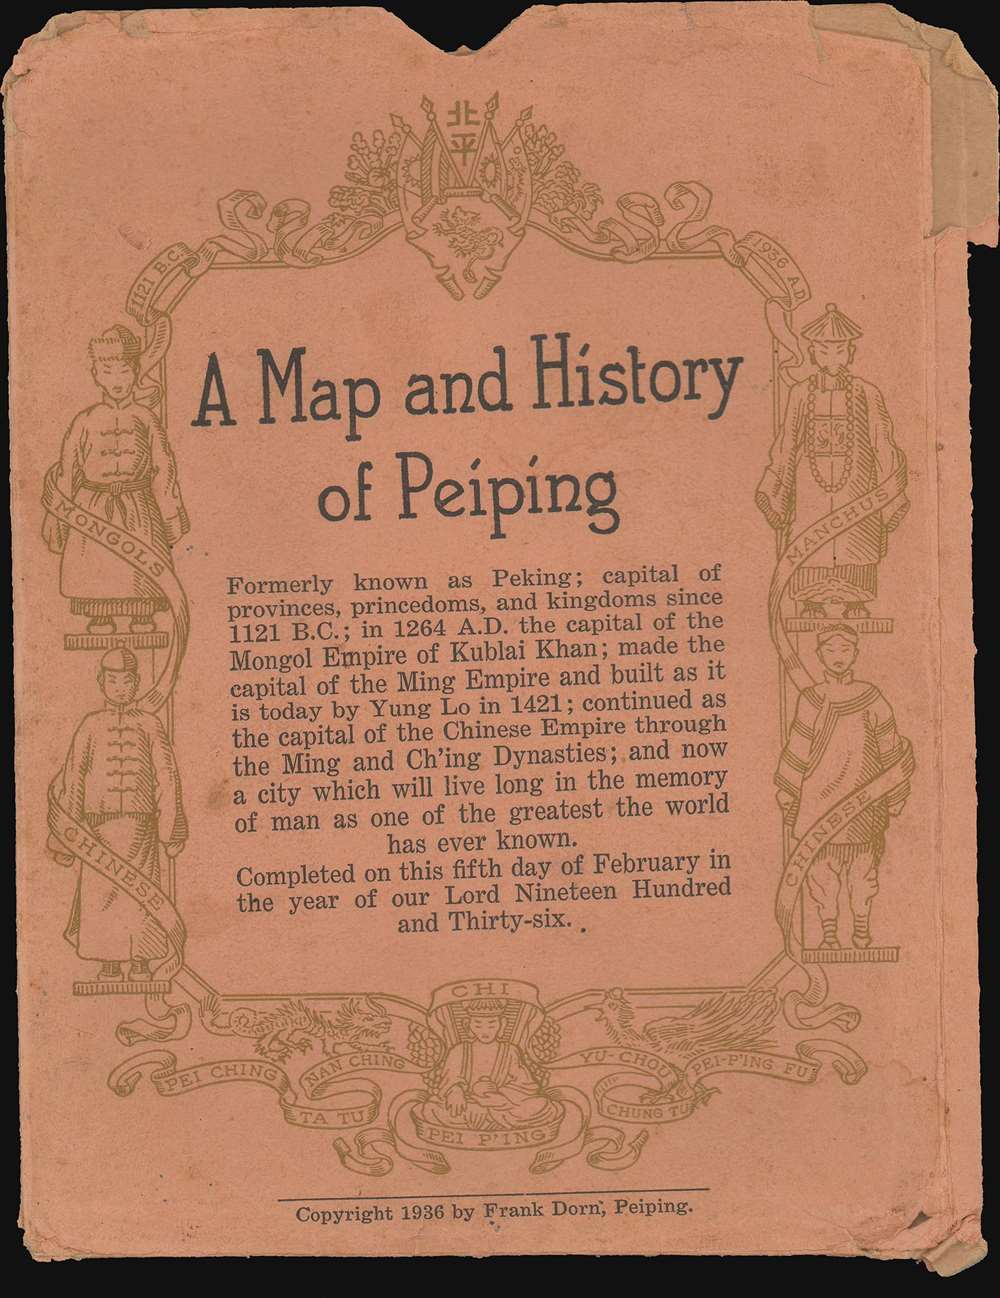 A Map and History of Peiping; formerly known as Peking; capital of provinces, princedoms, and kingdoms since 1121 B.C.; in 1264 A.D. the capital of the Mongol Empire of Kublai Khan; made the capital of the Ming Empire and built as it is today by Yung Lo in 1421; continued as the capital of the Chinese Empire through the Ming and Ching Dynasties; and now a city which will live long in the memory of man as one of the greatest the world has ever known. Completed on this fifth day of February in the year of our Lord Nineteen Hundred and Thirty-six. - Alternate View 1